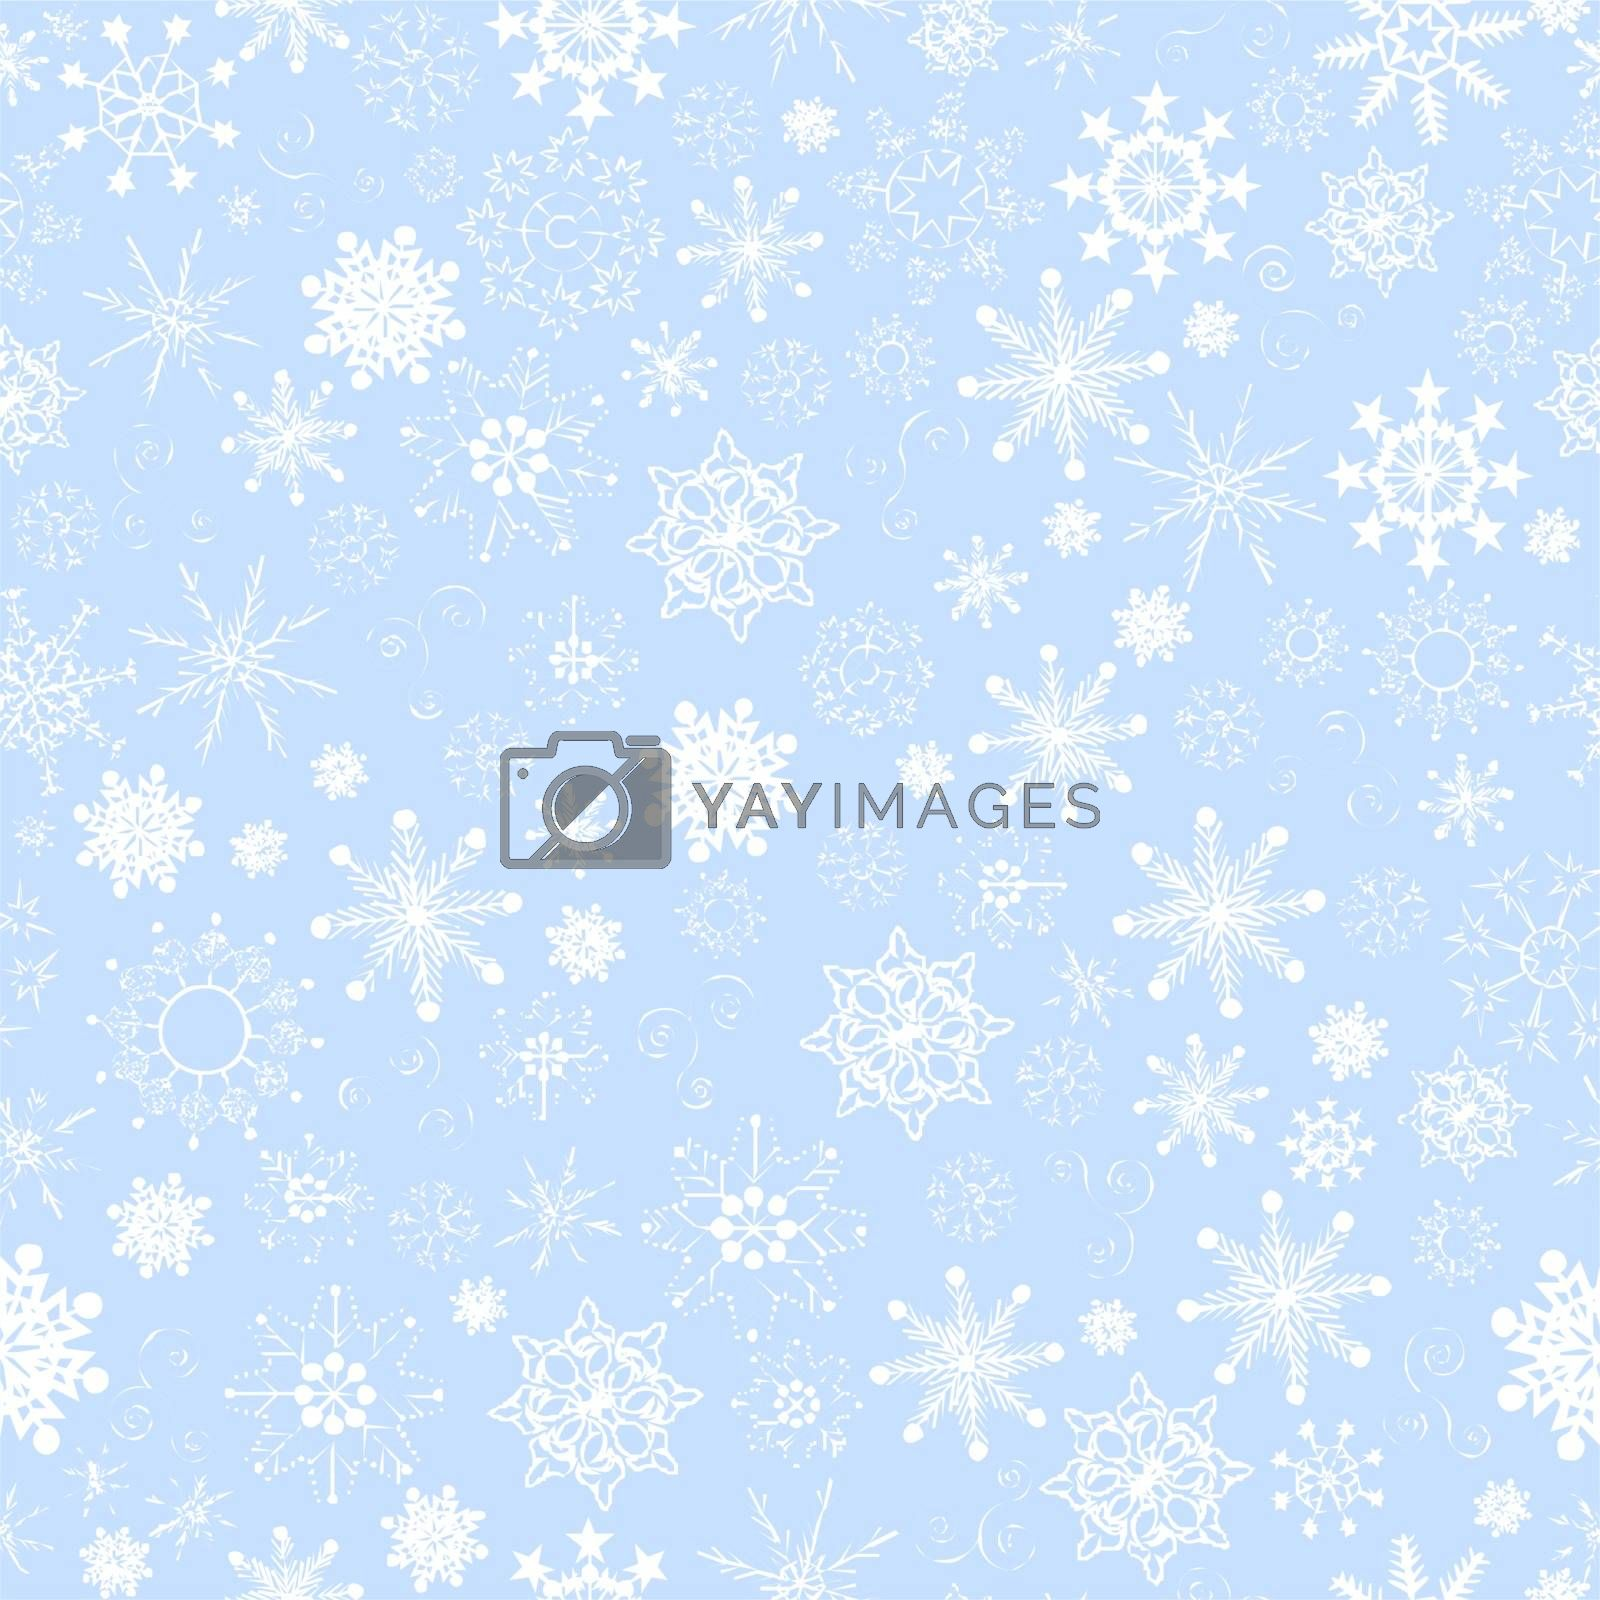 Snowflakes by liolle